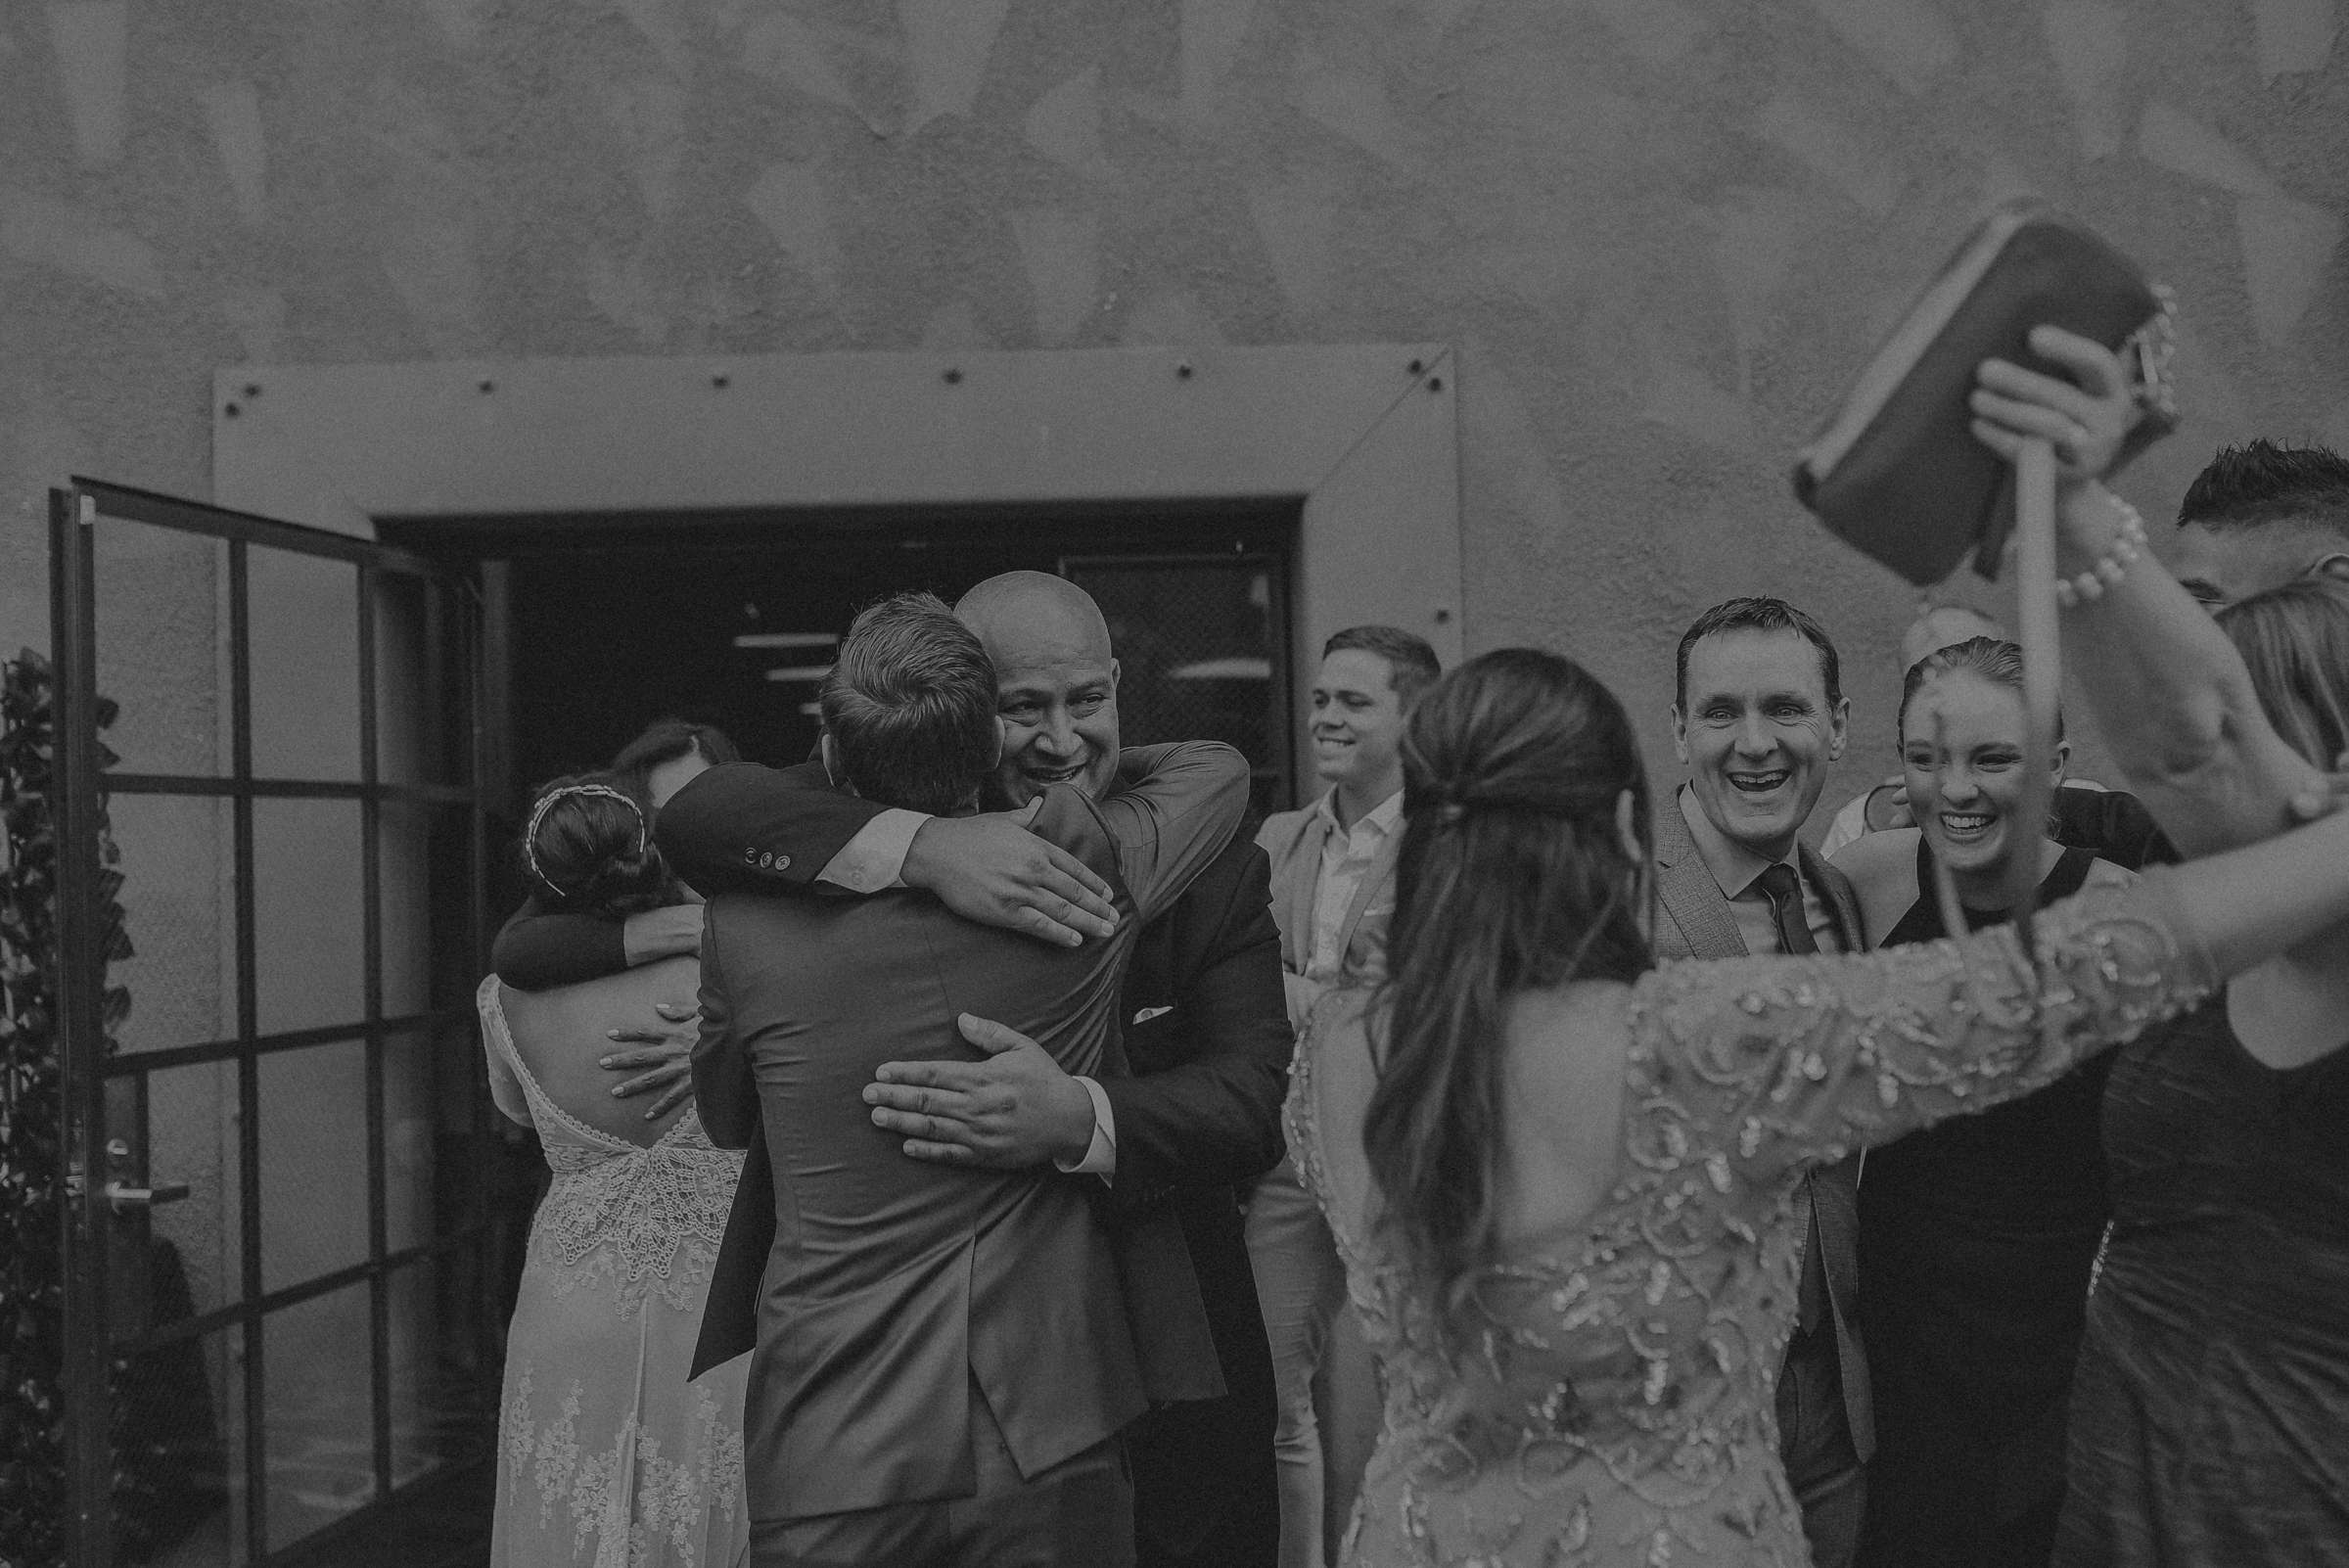 Isaiah + Taylor Photography - The Unique Space Wedding, Los Angeles Wedding Photography 125.jpg